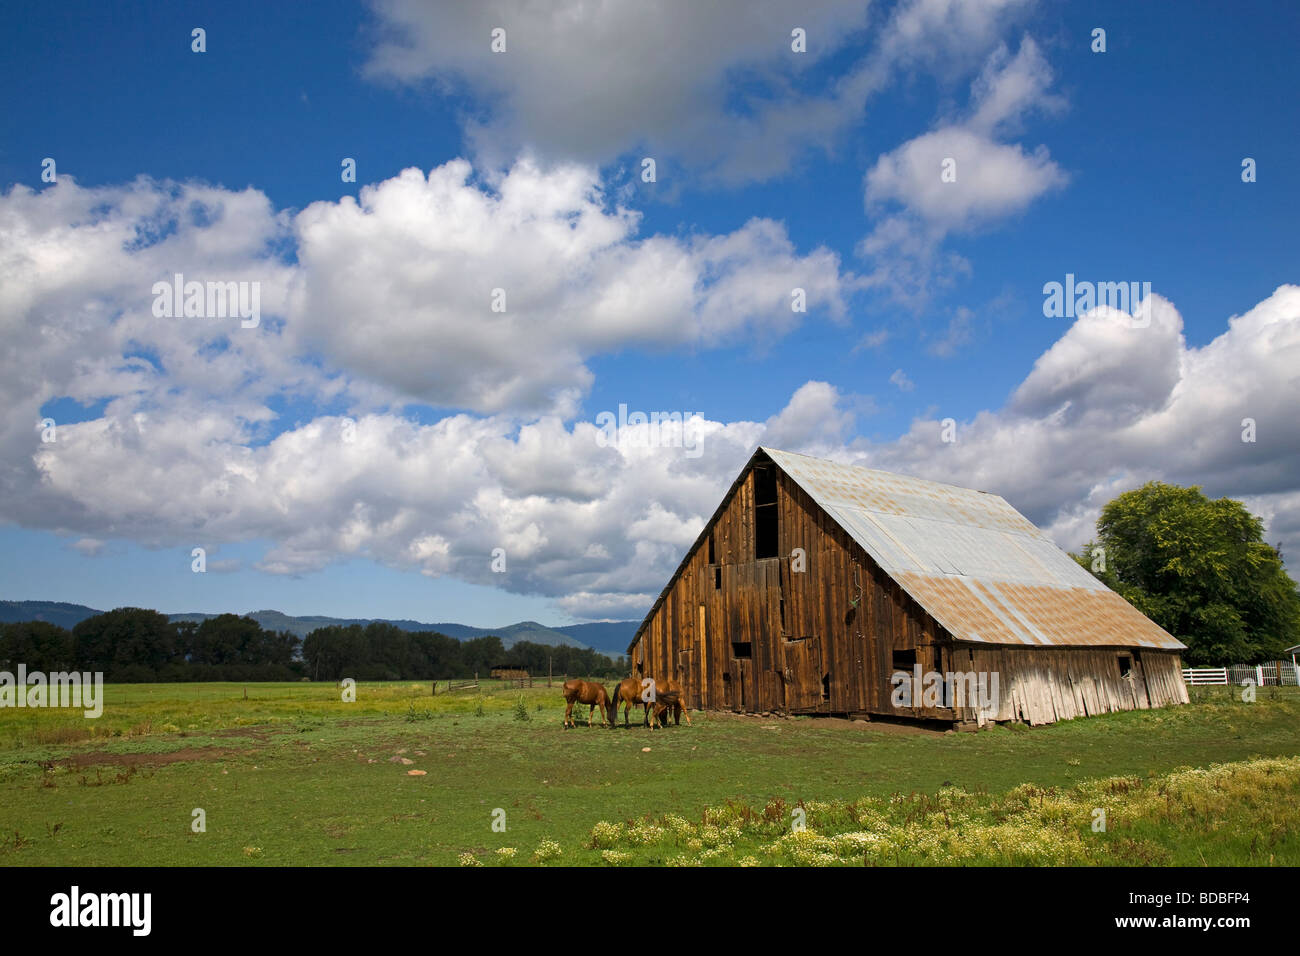 An old barn and wooden fence on a ranch near Halfway Oregon on the slopes of the Wallowa Mountains in eastern Oregon - Stock Image